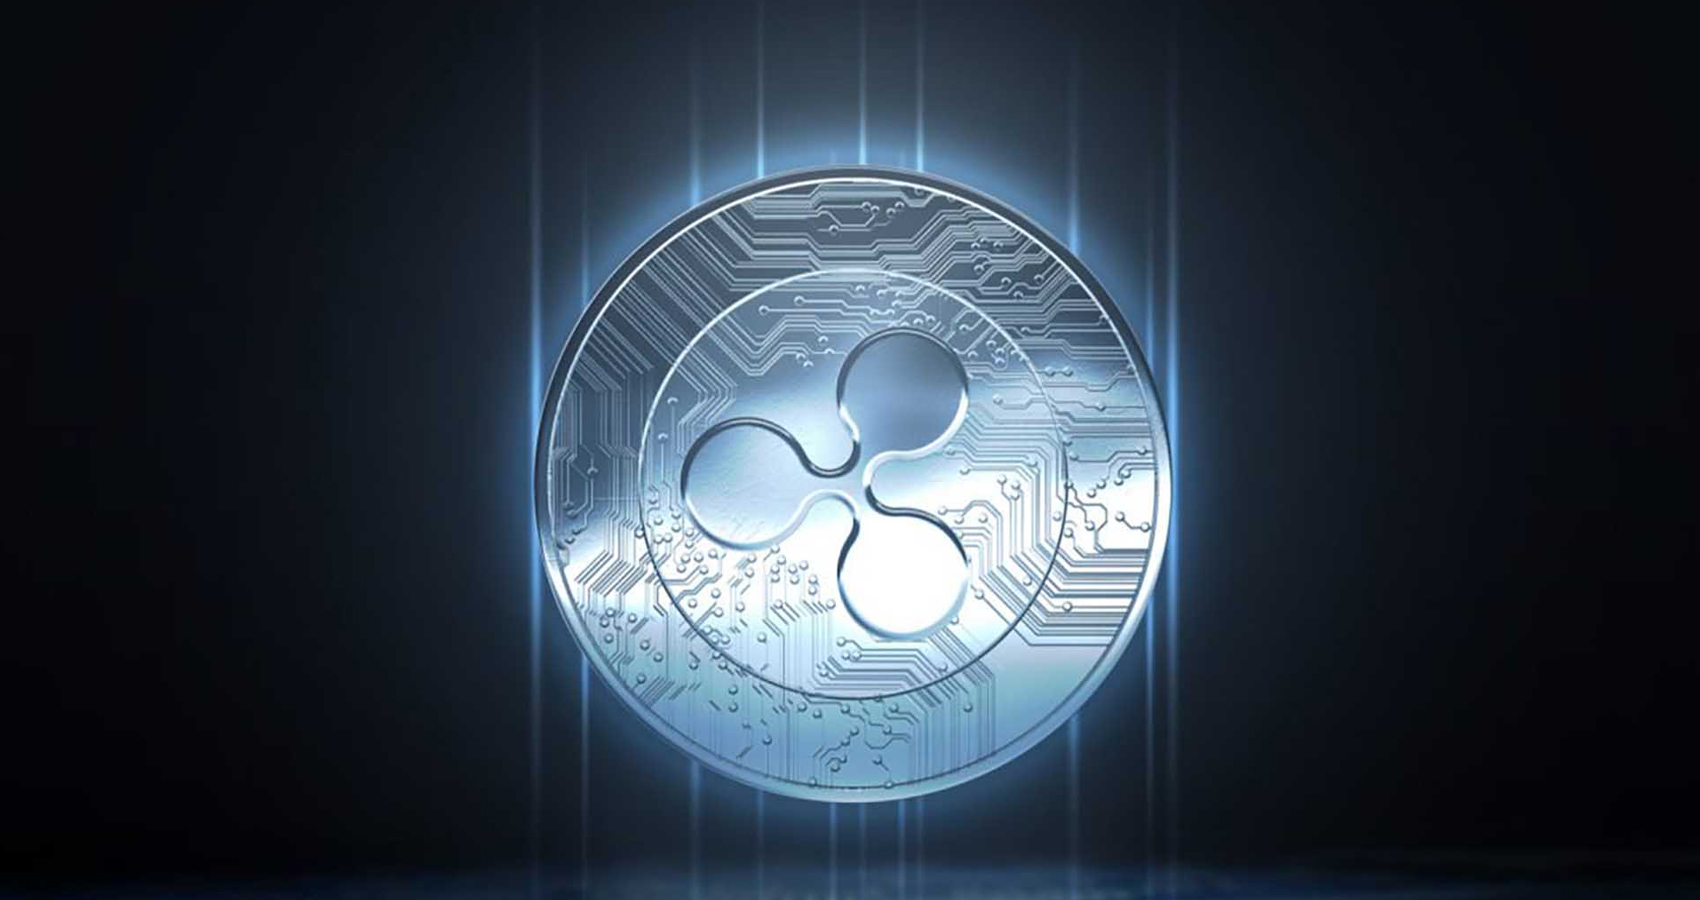 Ripple will be carbon free by 2030